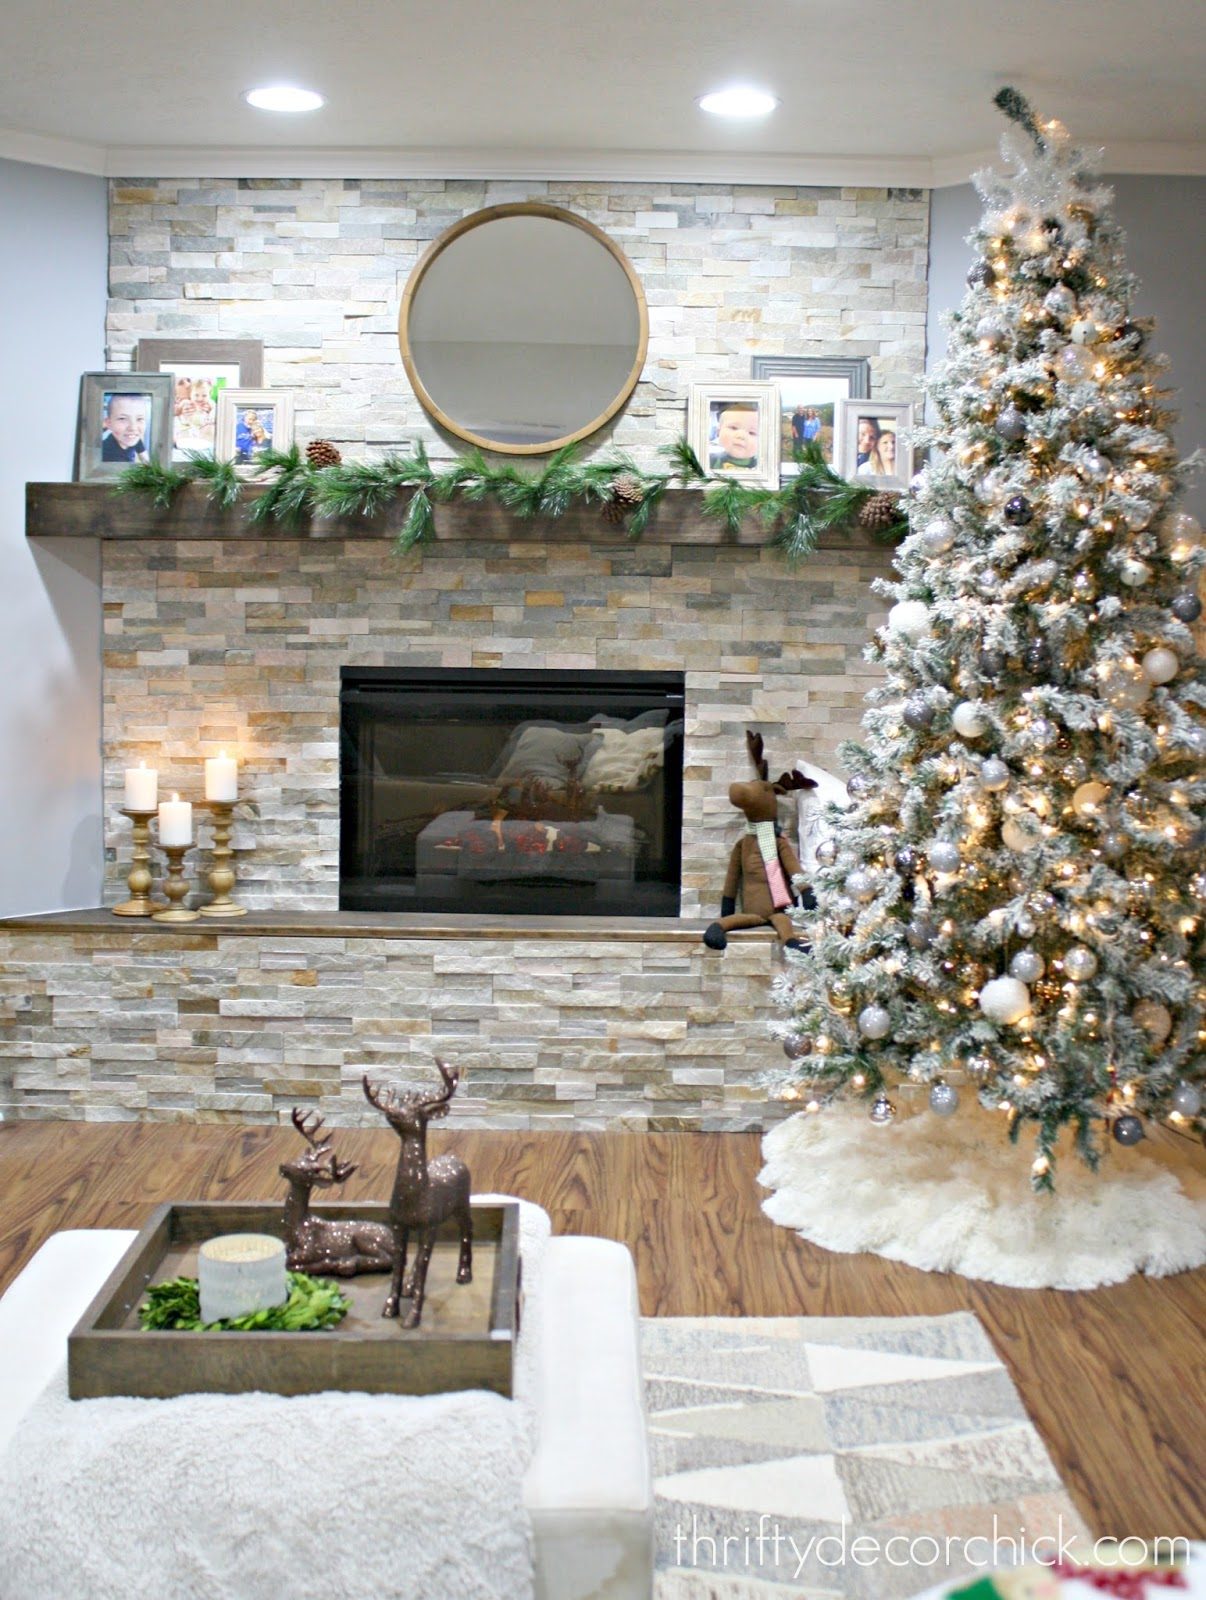 December 2016 from Thrifty Decor Chick